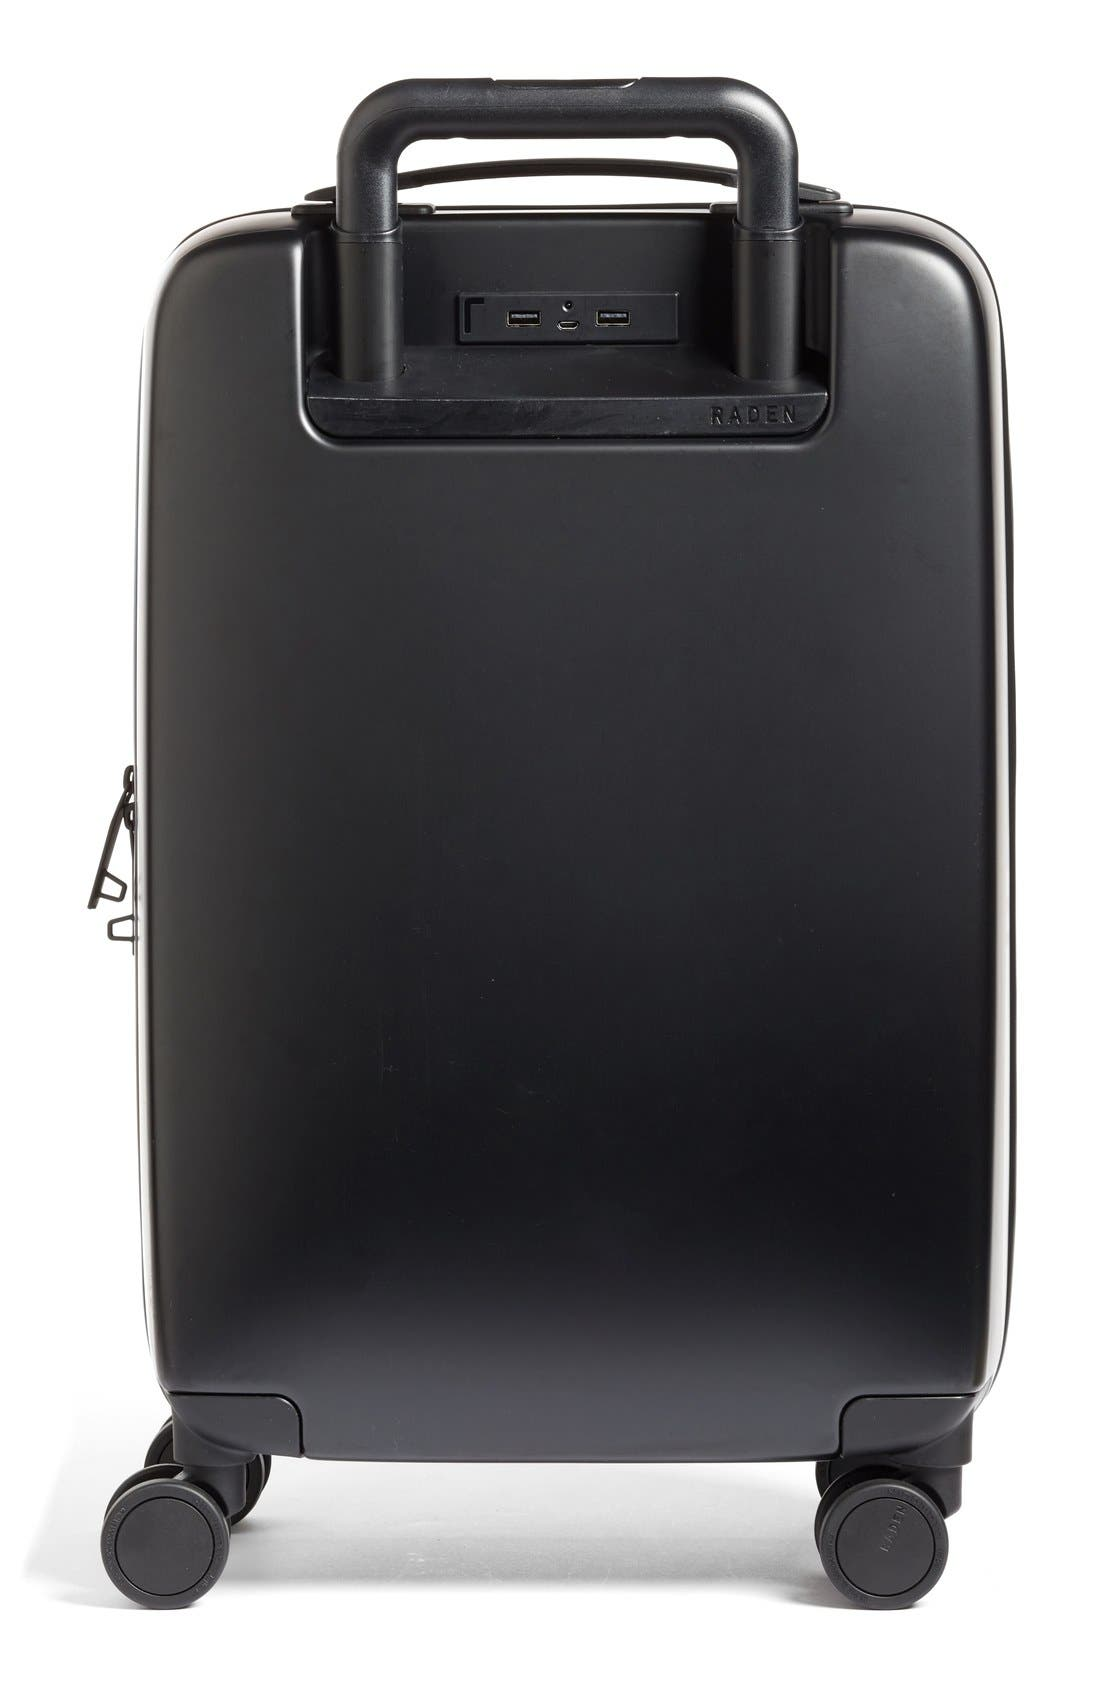 Raden The A22 22 Inch Charging Wheeled Carry-On Suitcase